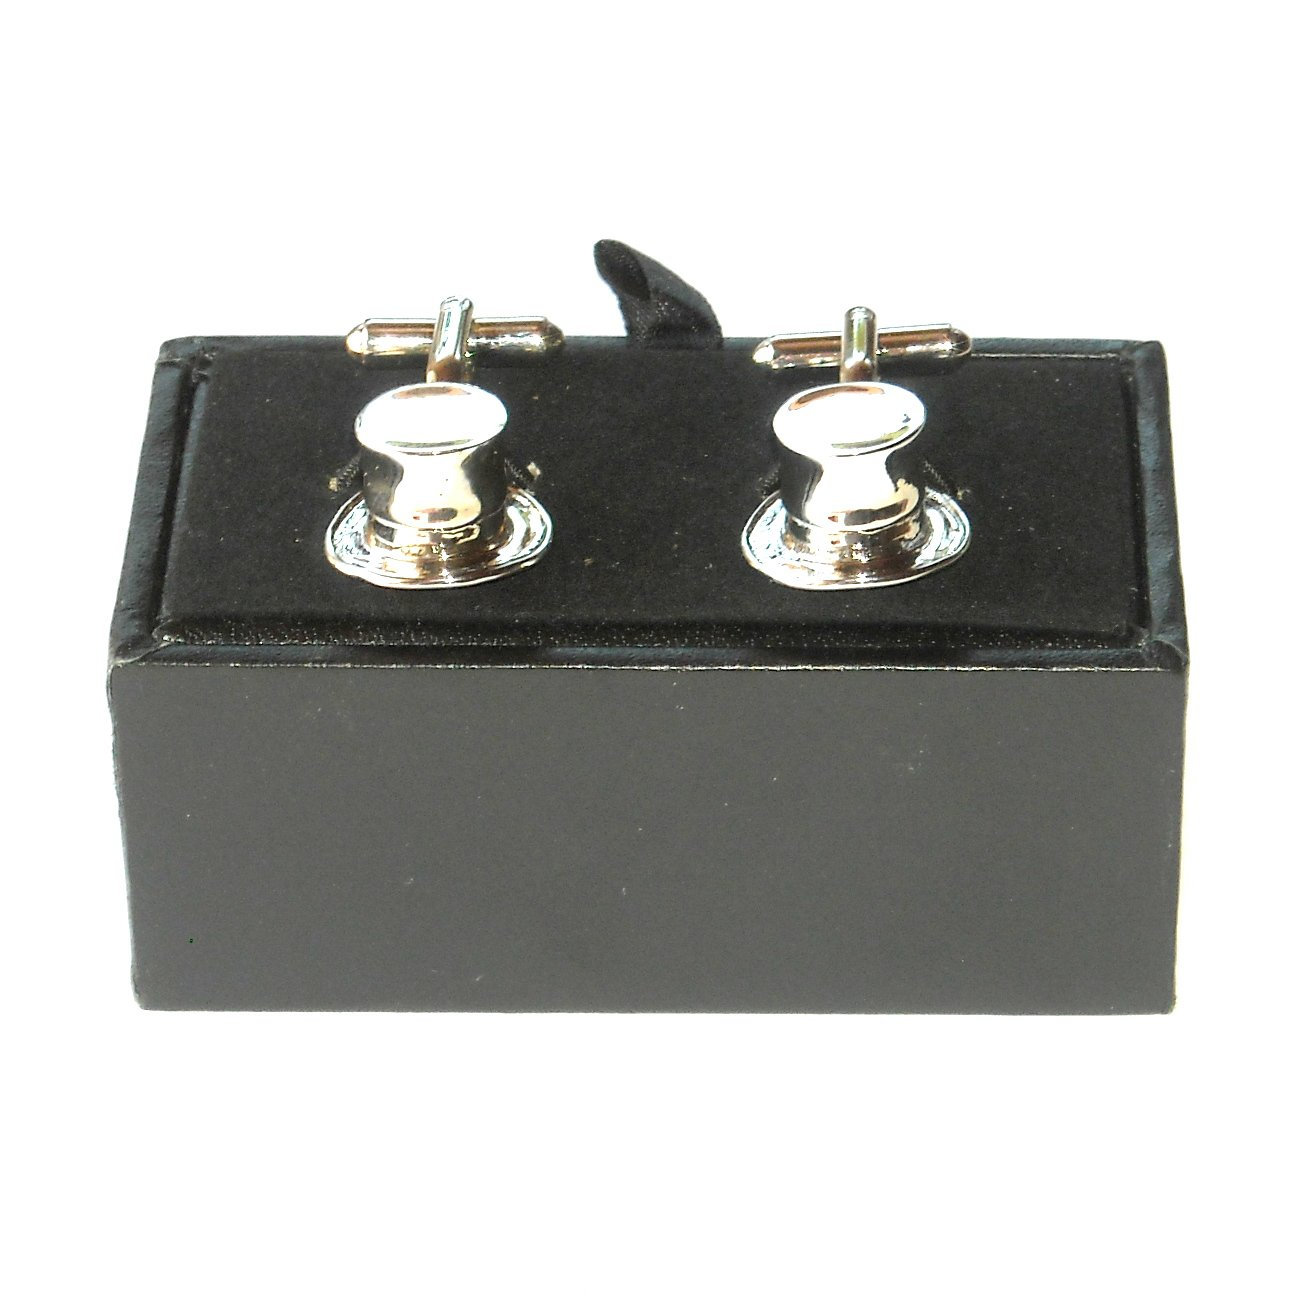 Gentlemens High Hat Boxed Silver Color 3D Cufflinks